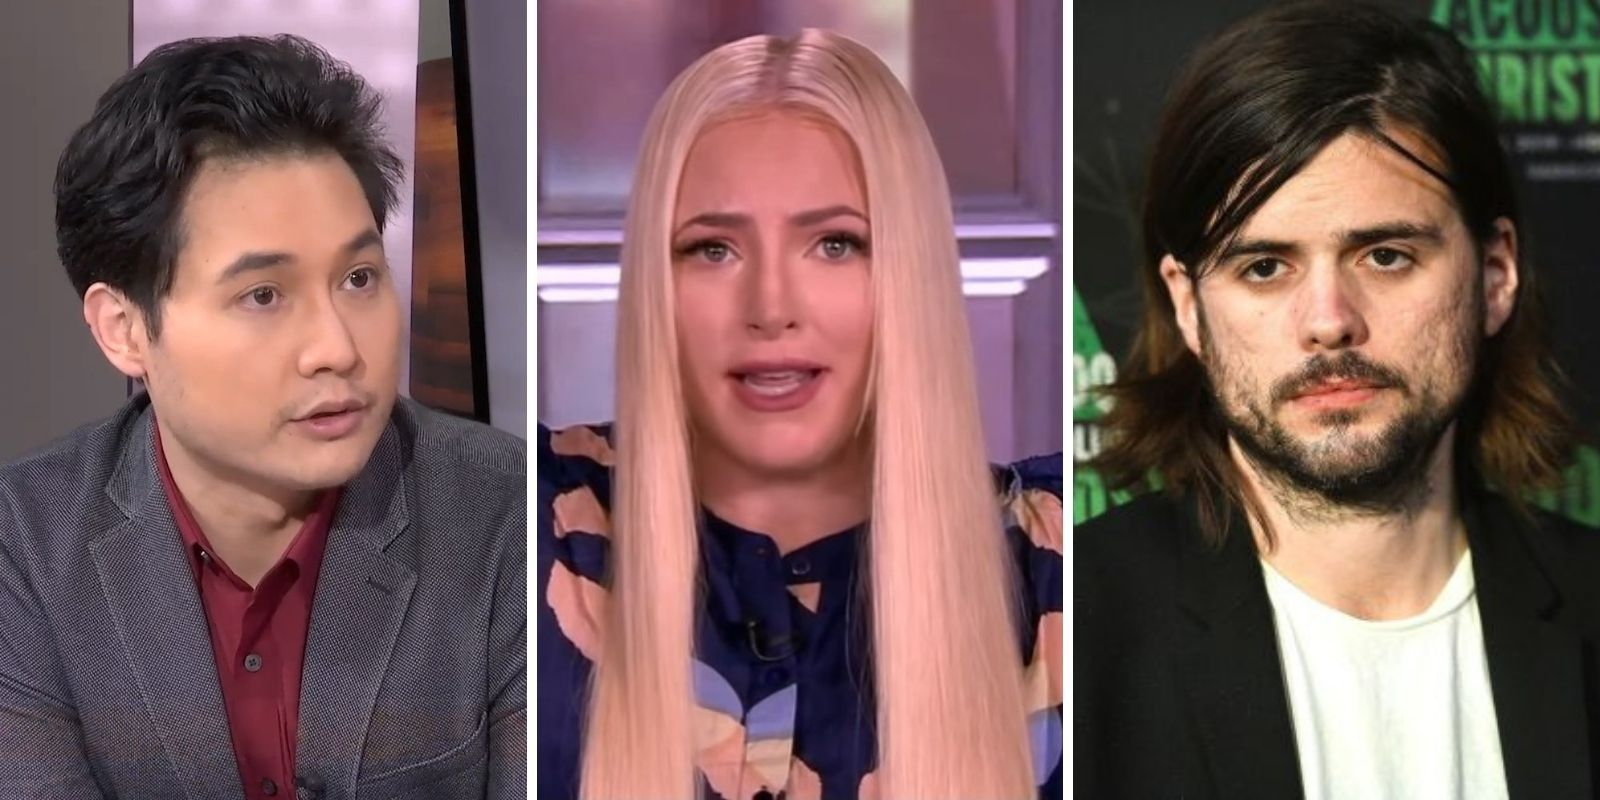 WATCH: Meghan McCain defends Winston Marshall's support of Andy Ngo